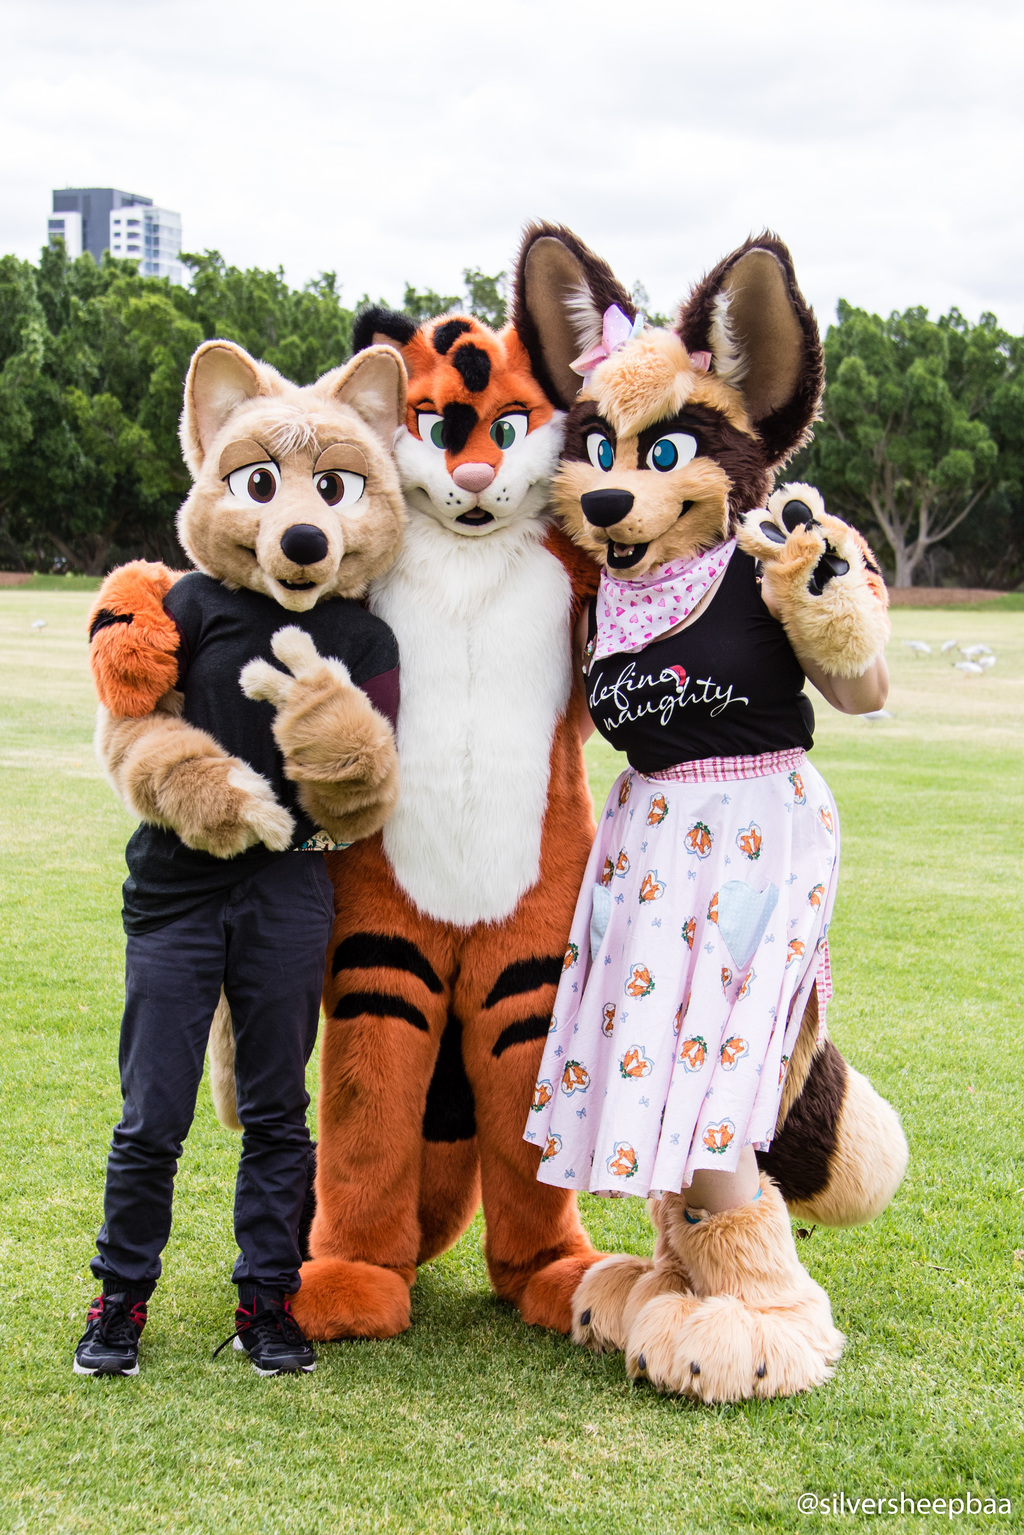 DecemFUR 2017: Seth, Kat Aclysm and Fritter